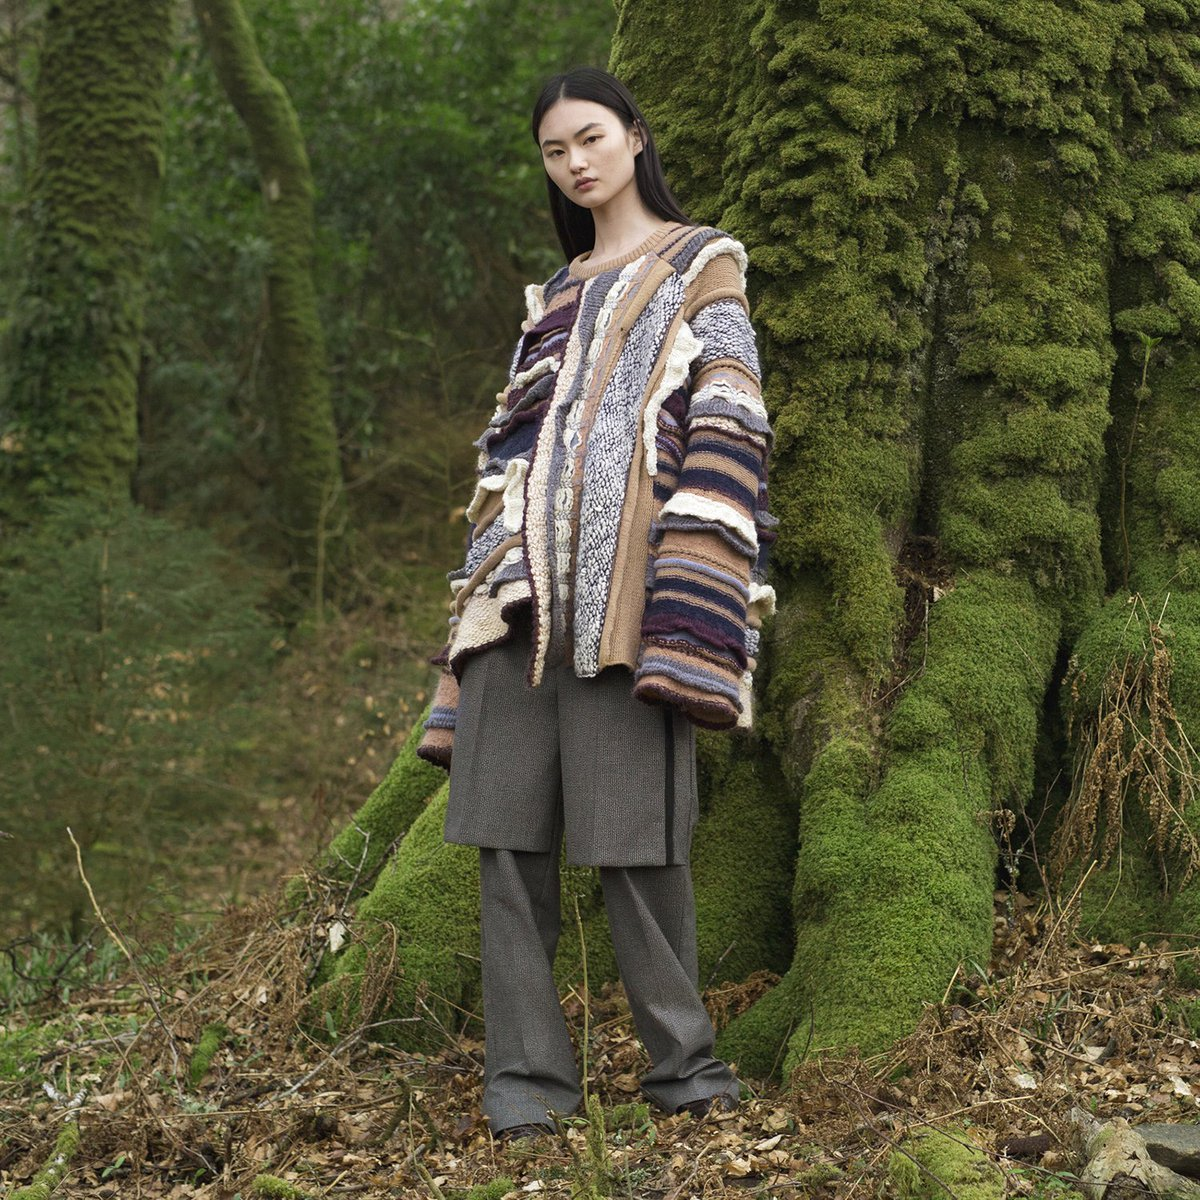 """Stella McCartney on Twitter: """"We really wanted the clothes to connect with  nature, one of the core messages at the heart of the Stella McCartney  brand...sustainability, fashion and luxury x Stella Winter"""